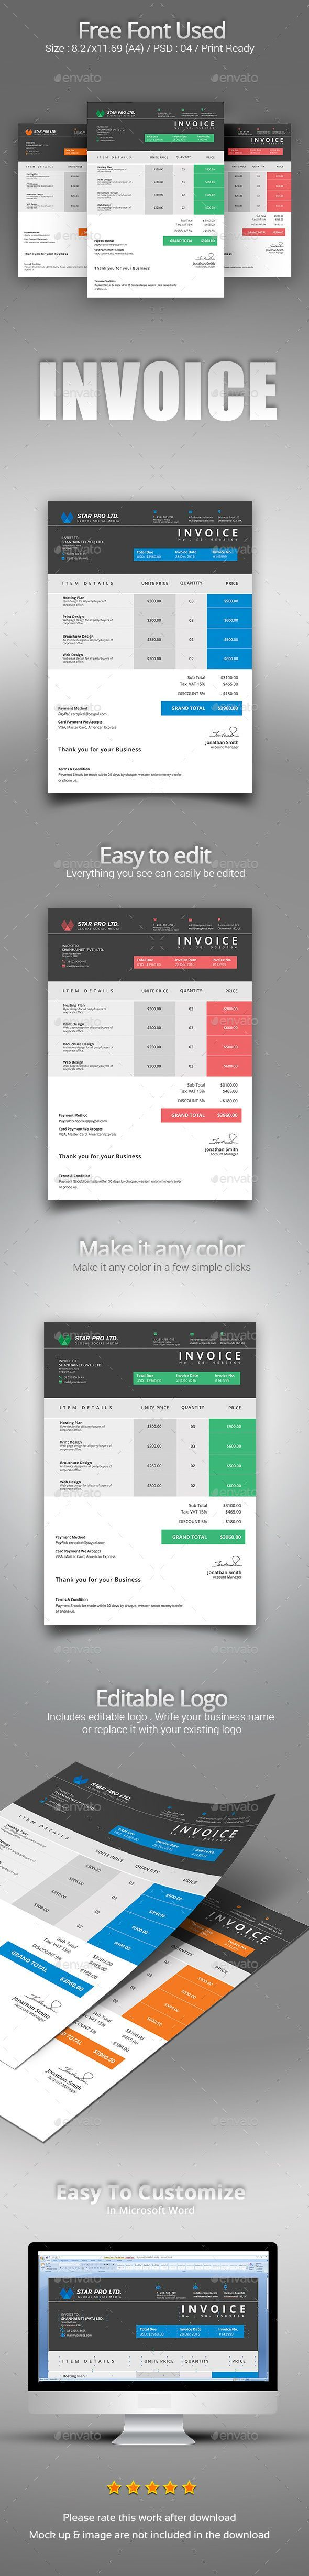 melhores ideias microsoft word invoice template pinterest clean psd vector eps indesign indd illustrator